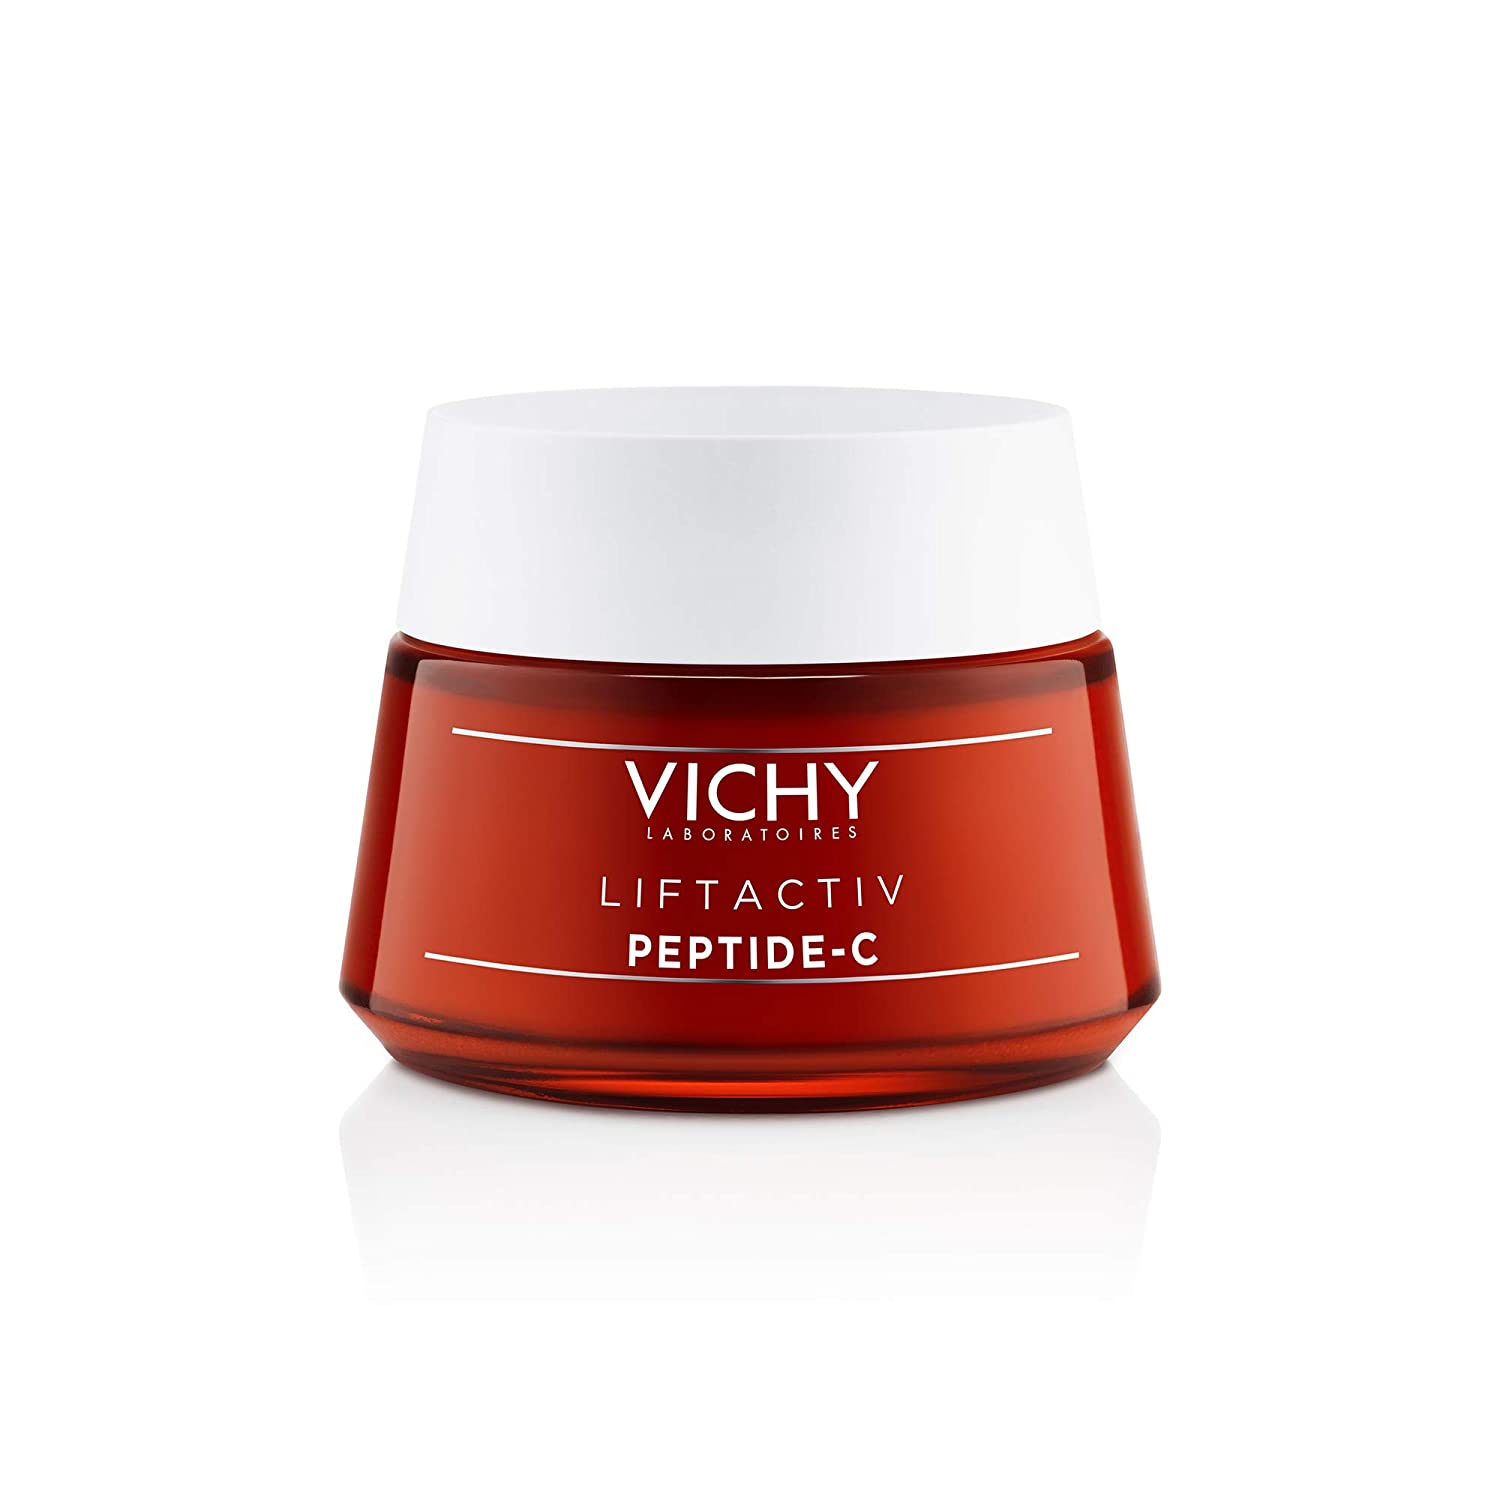 Vichy LiftActiv Peptide-C Anti-Aging Moisturizer, Vitamin C Face Cream with Peptides to Reduce Wrinkles, Firm and Brighten Skin